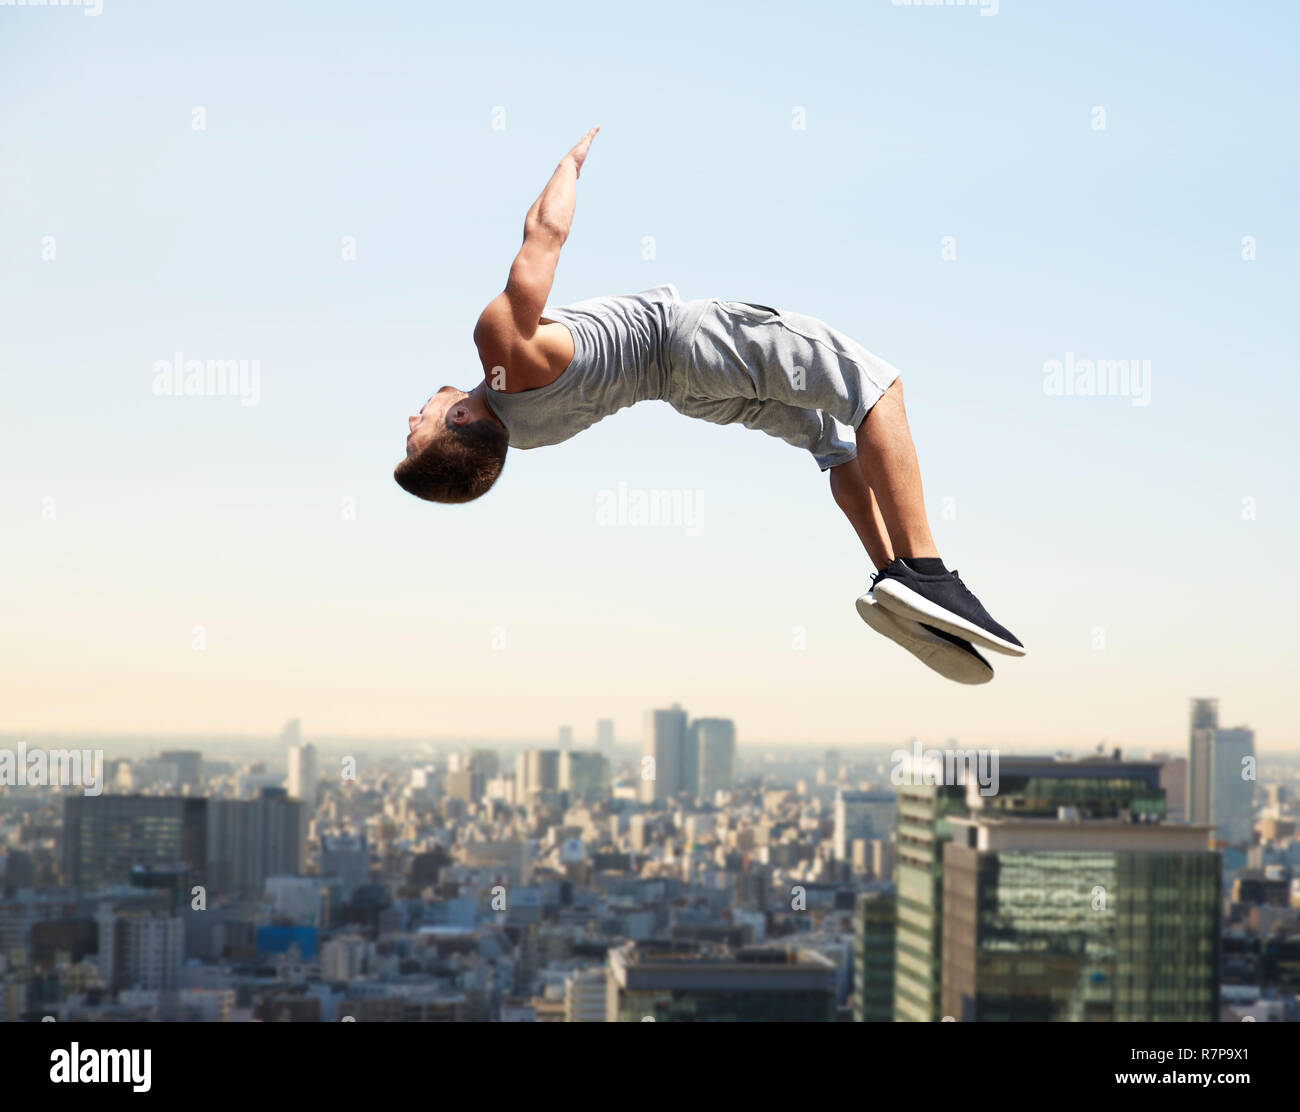 man making parkour jumping over tokyo city Stock Photo